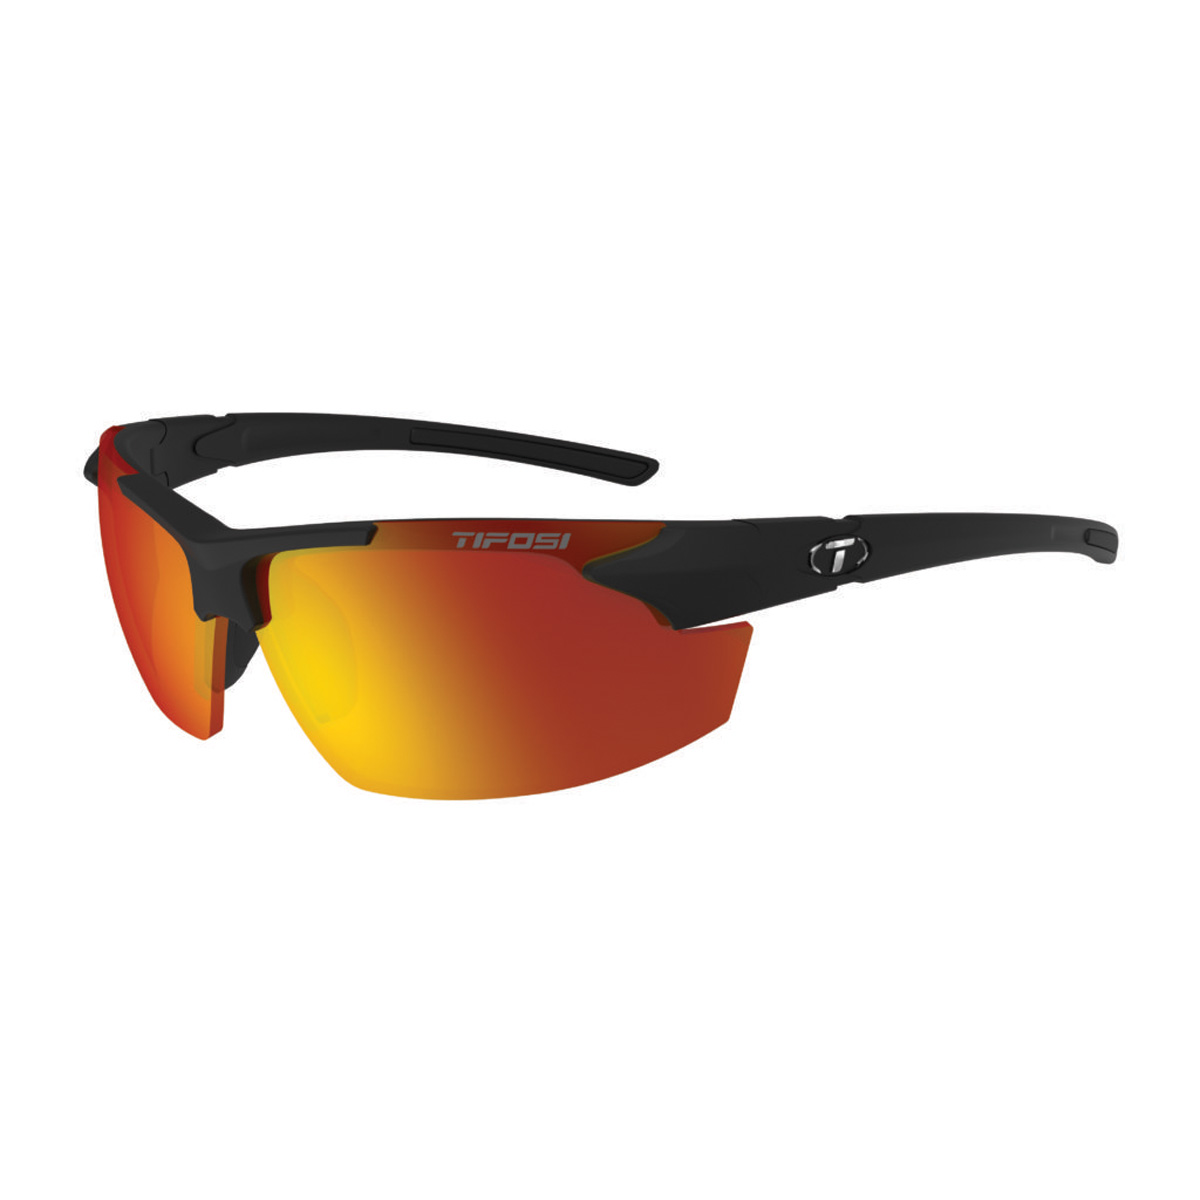 Tifosi Jet FC Sunglasses 1140400178 Matte Black Smoke Red | eBay